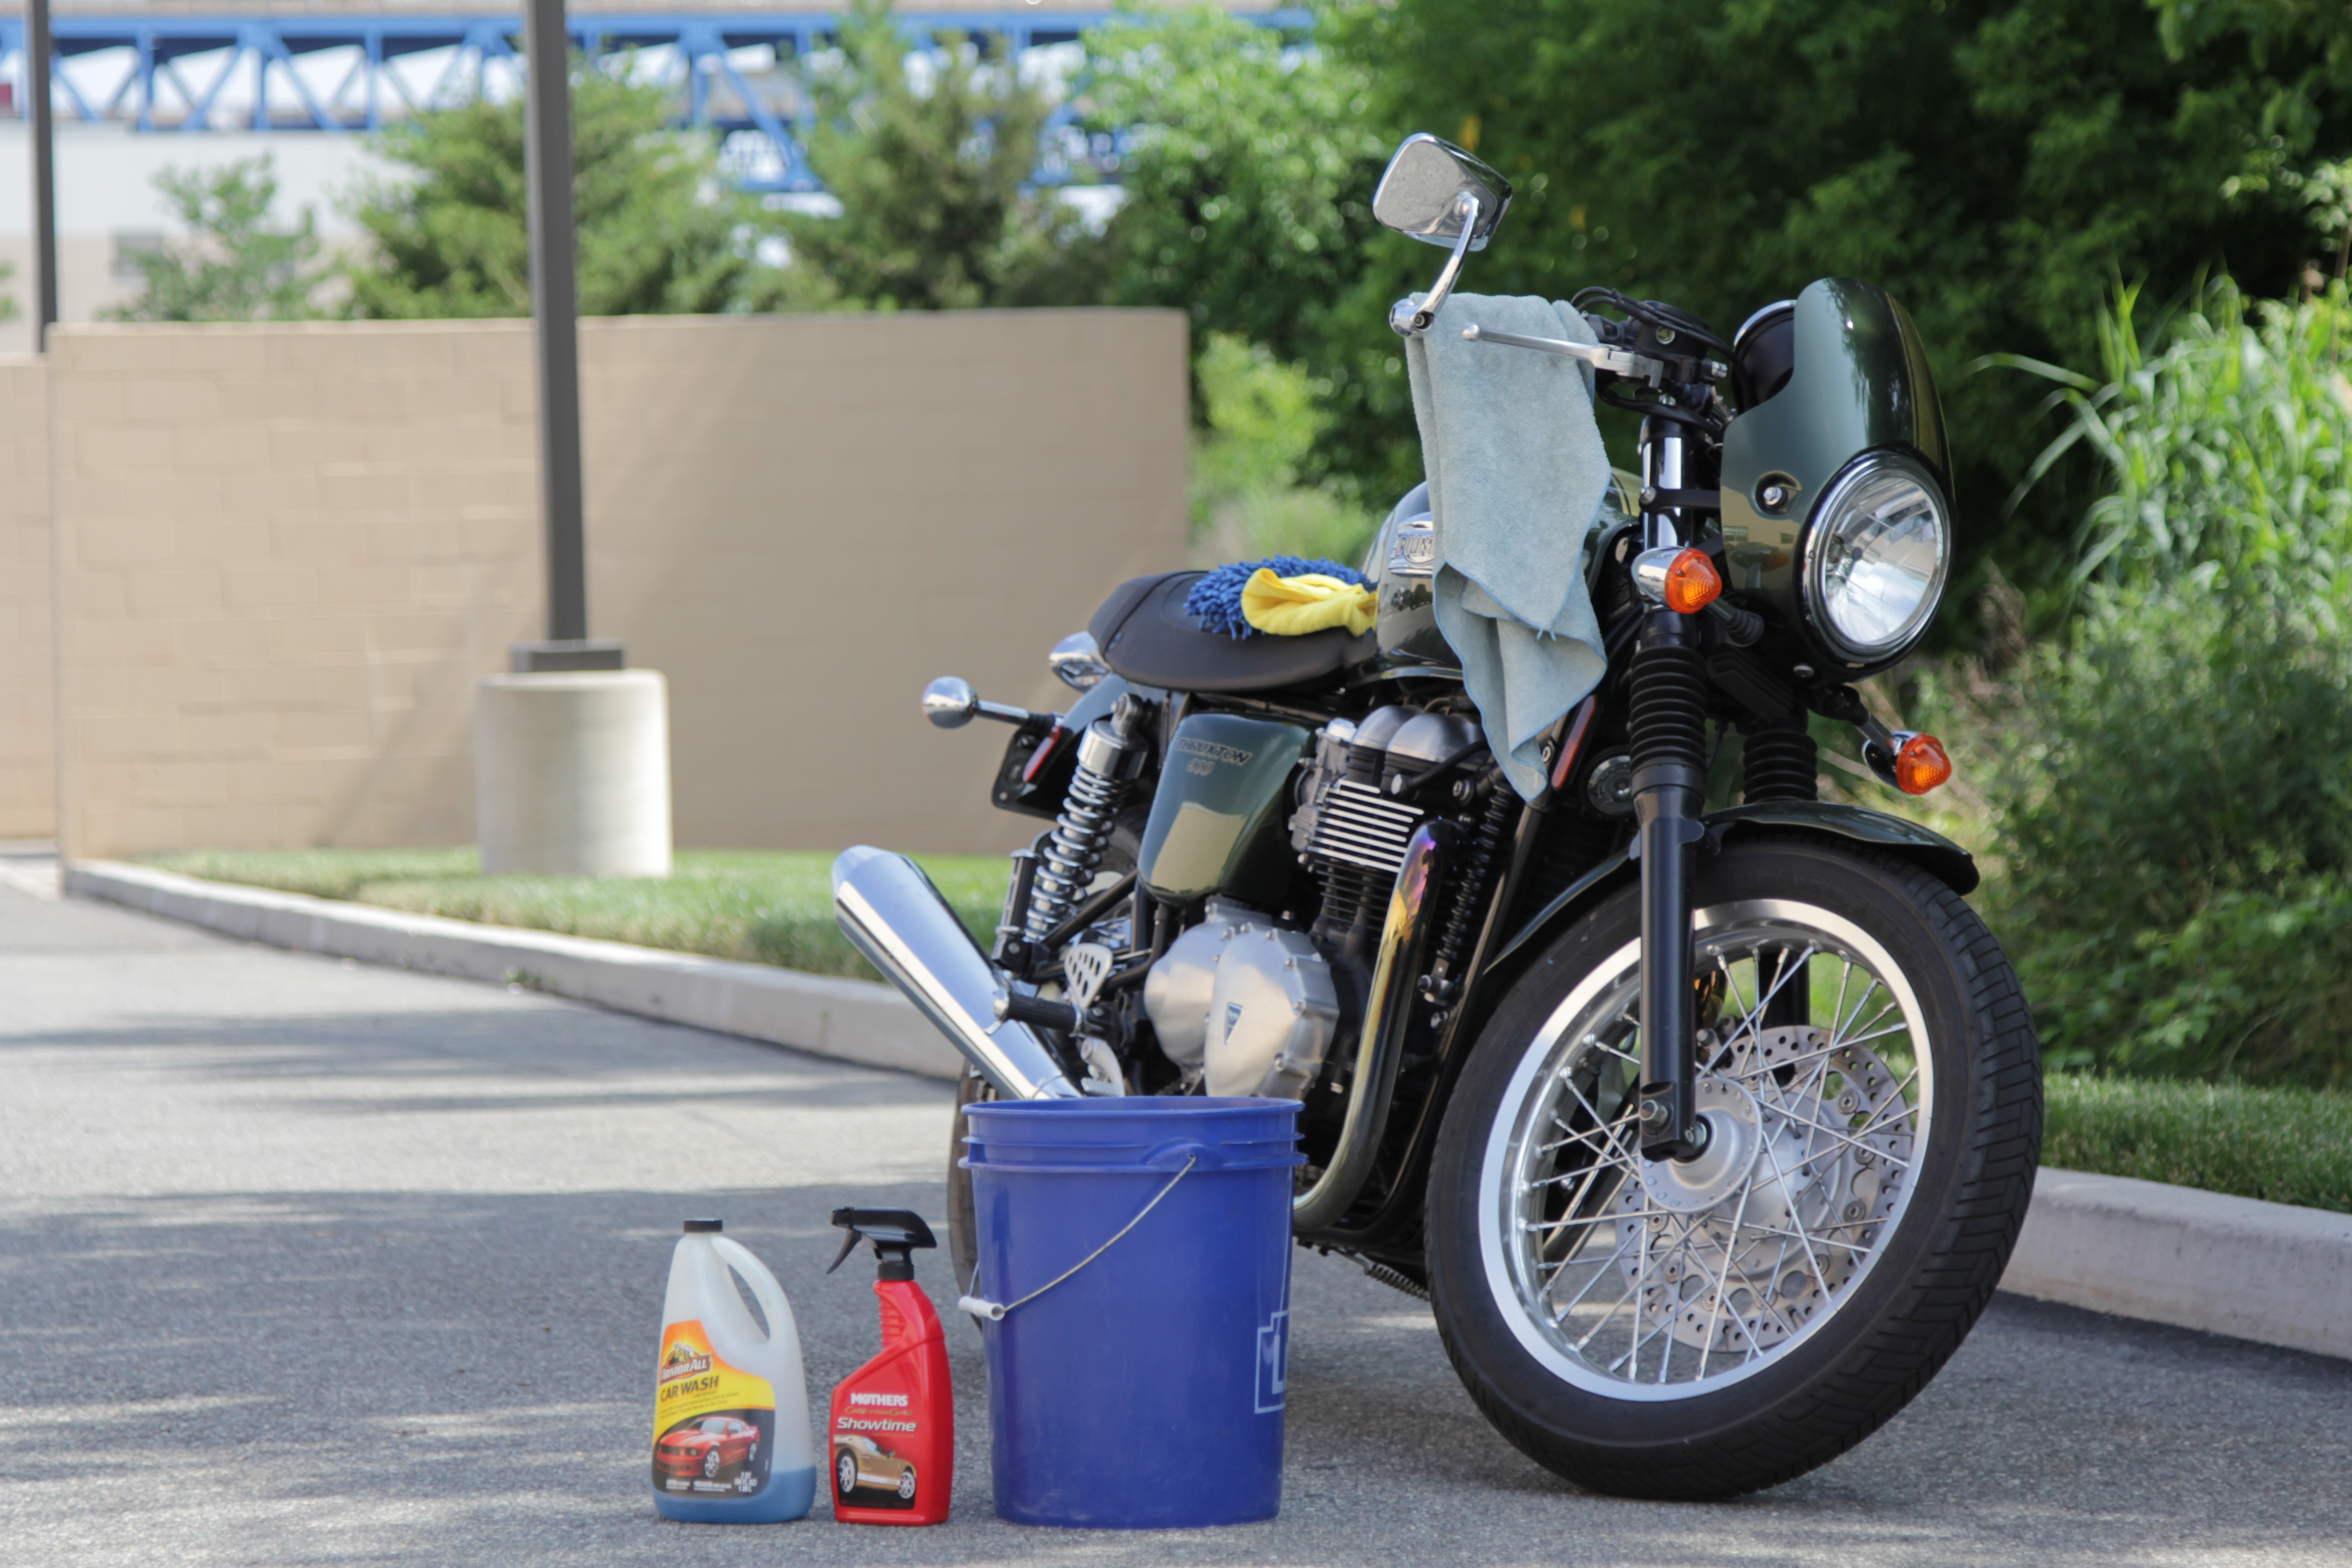 How to wash a motorcycle